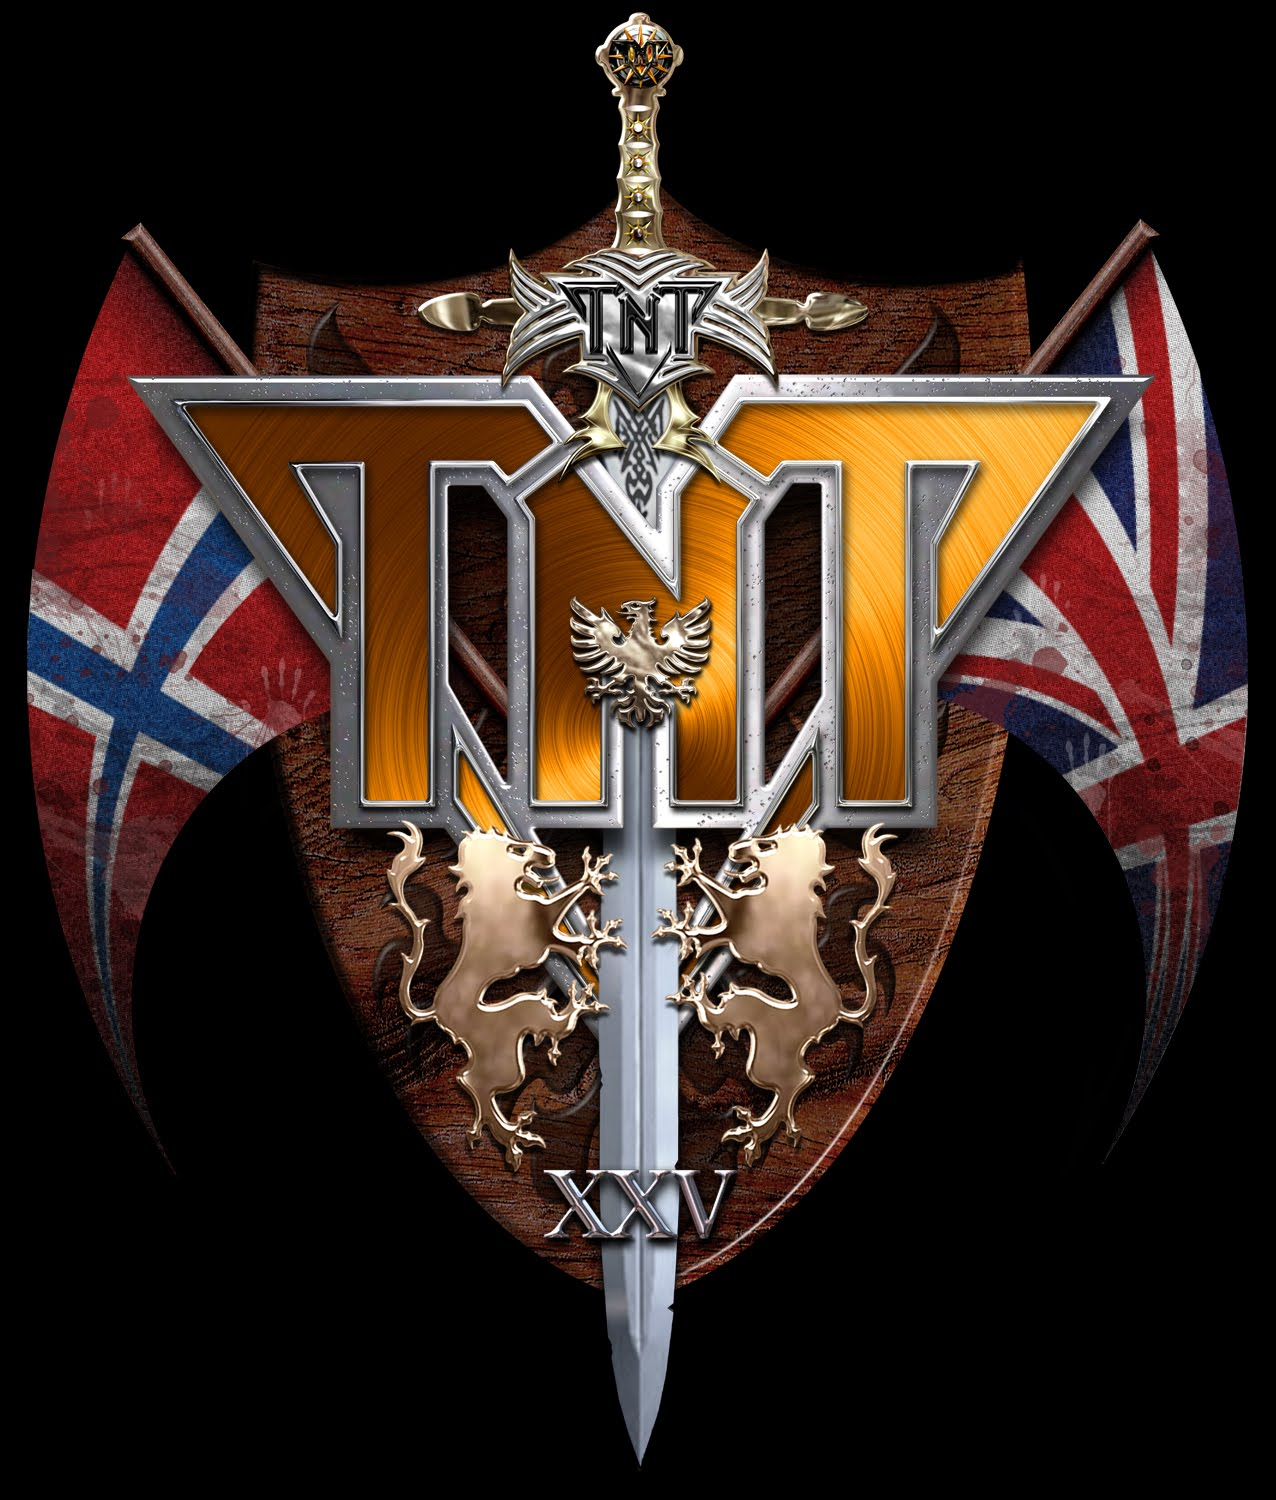 tnt discography